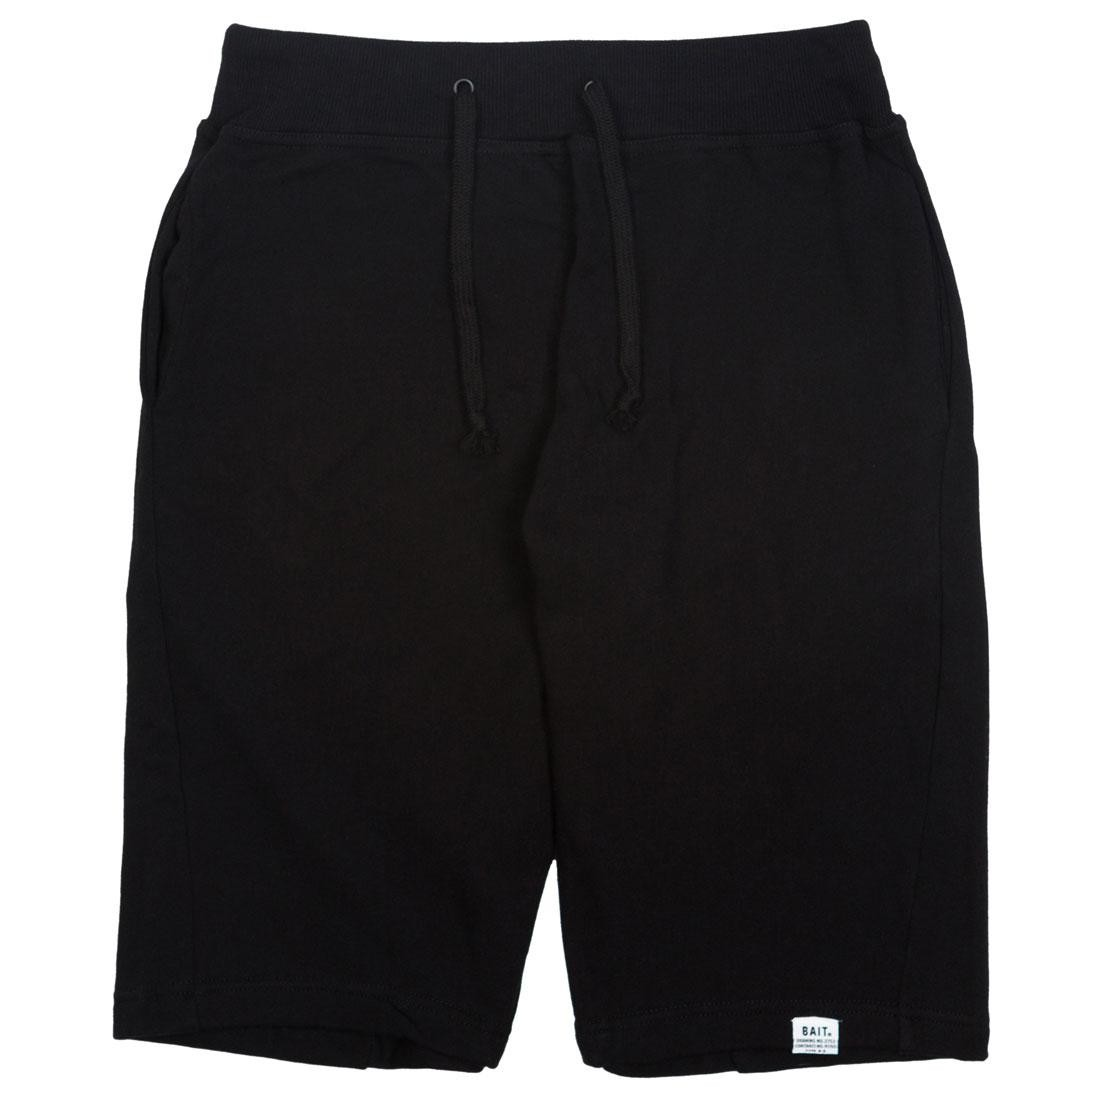 BAIT Men Sweat Shorts black